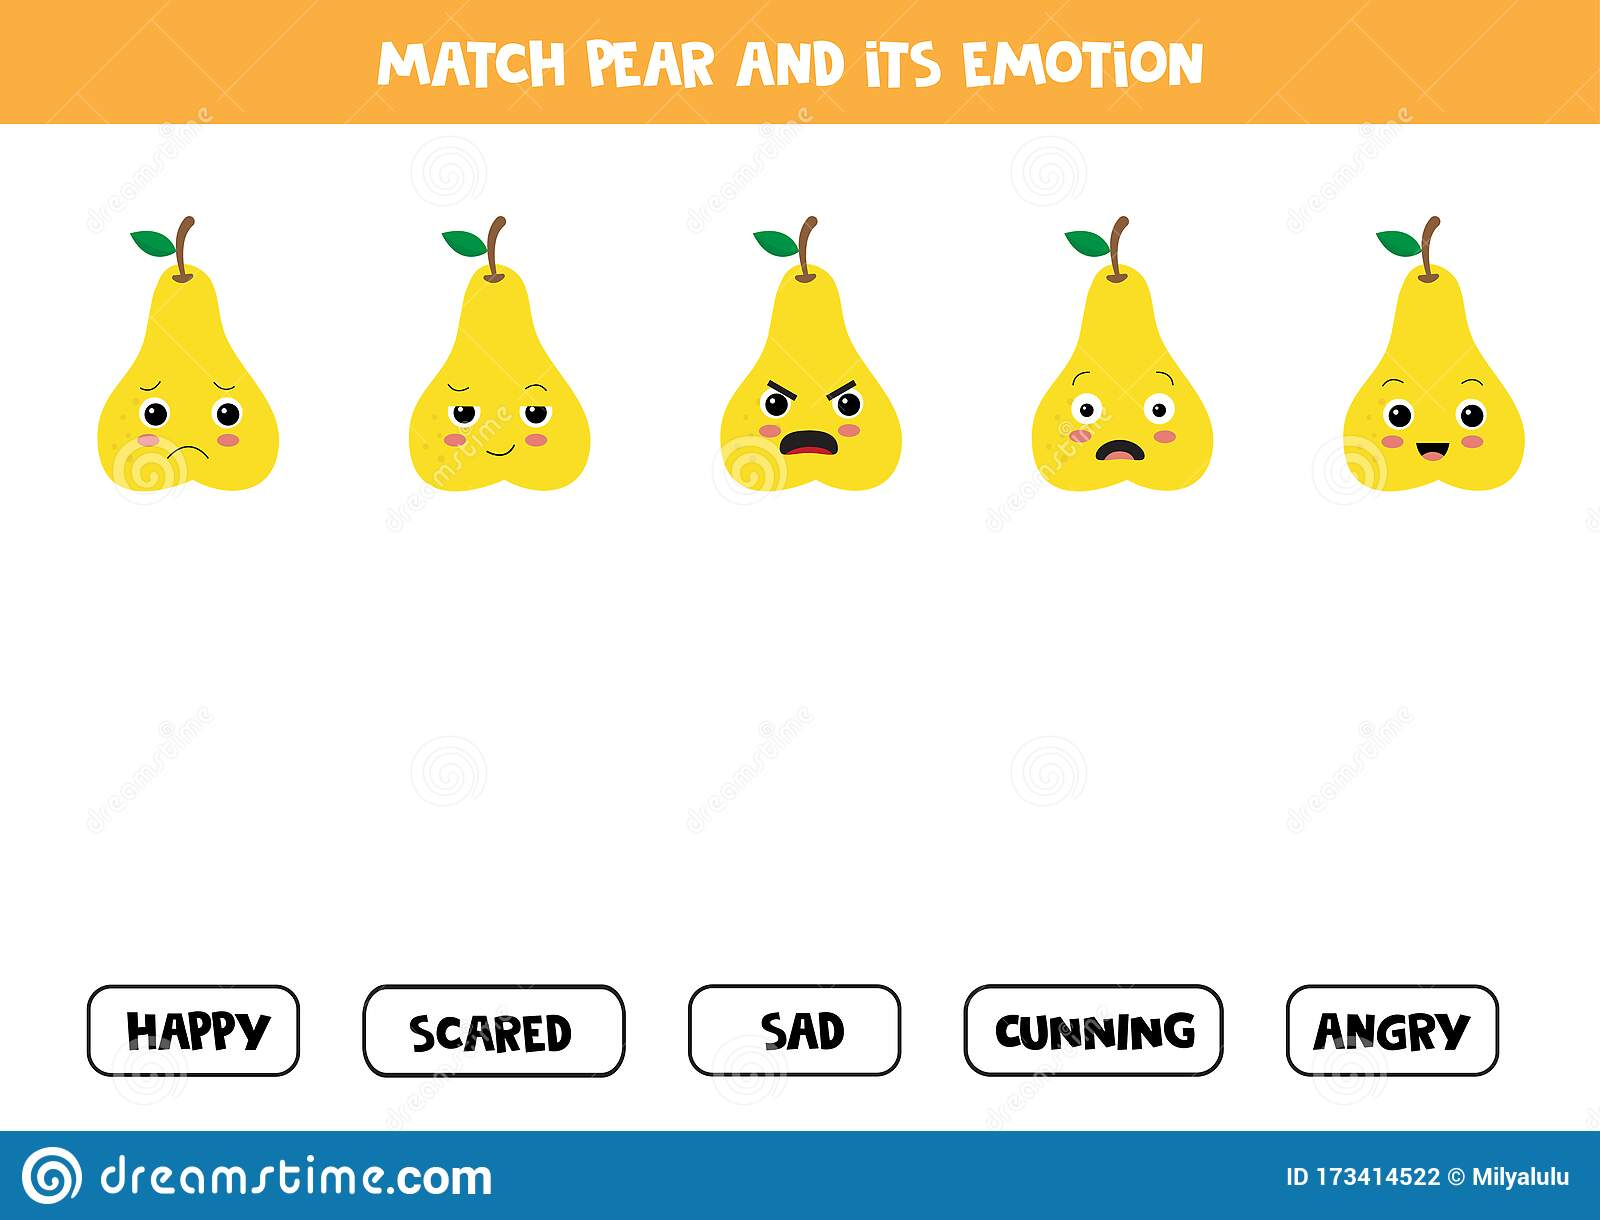 Match Cute Cartoon Pear And Its Emotion Educational Game